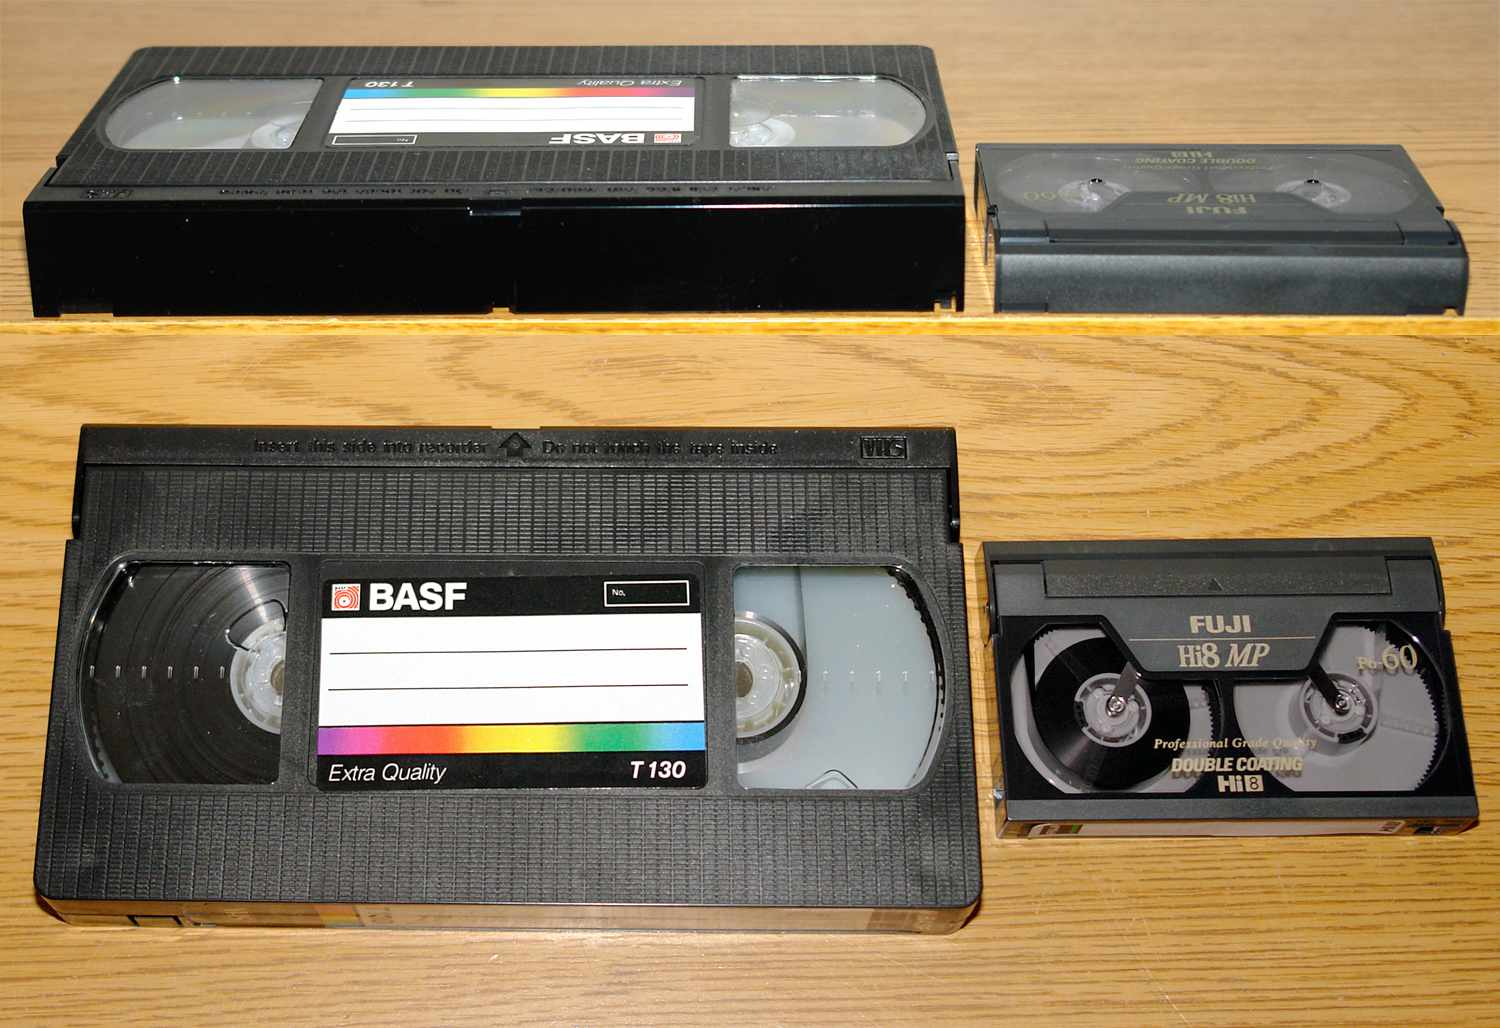 Is There a VHS Adapter for 8mm Tapes?